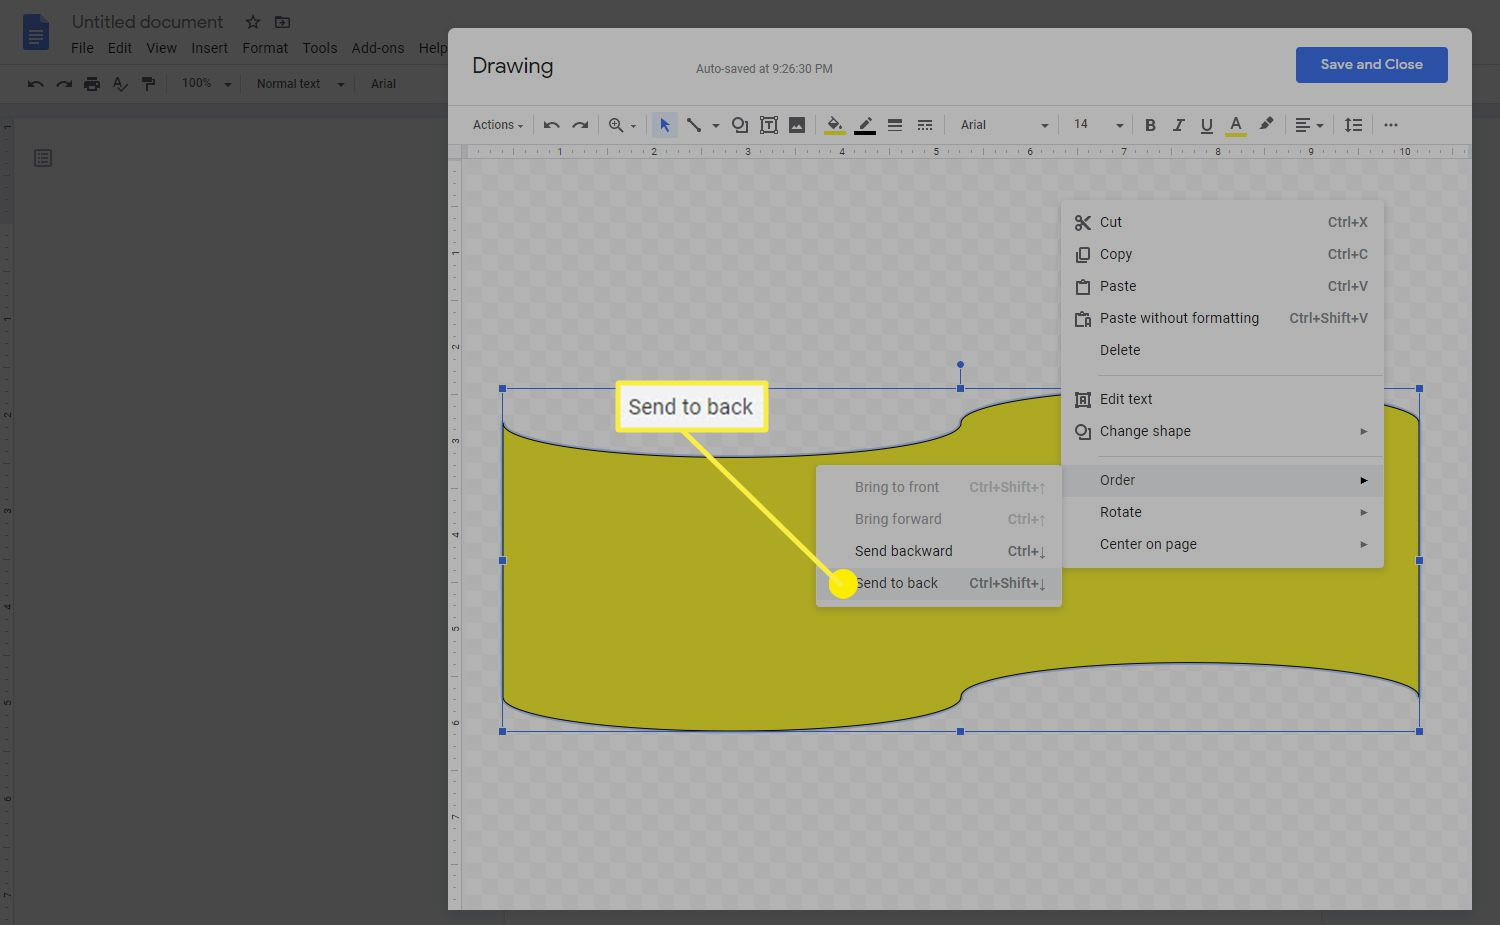 How to send a shape to the background in the Google Docs drawing feature.